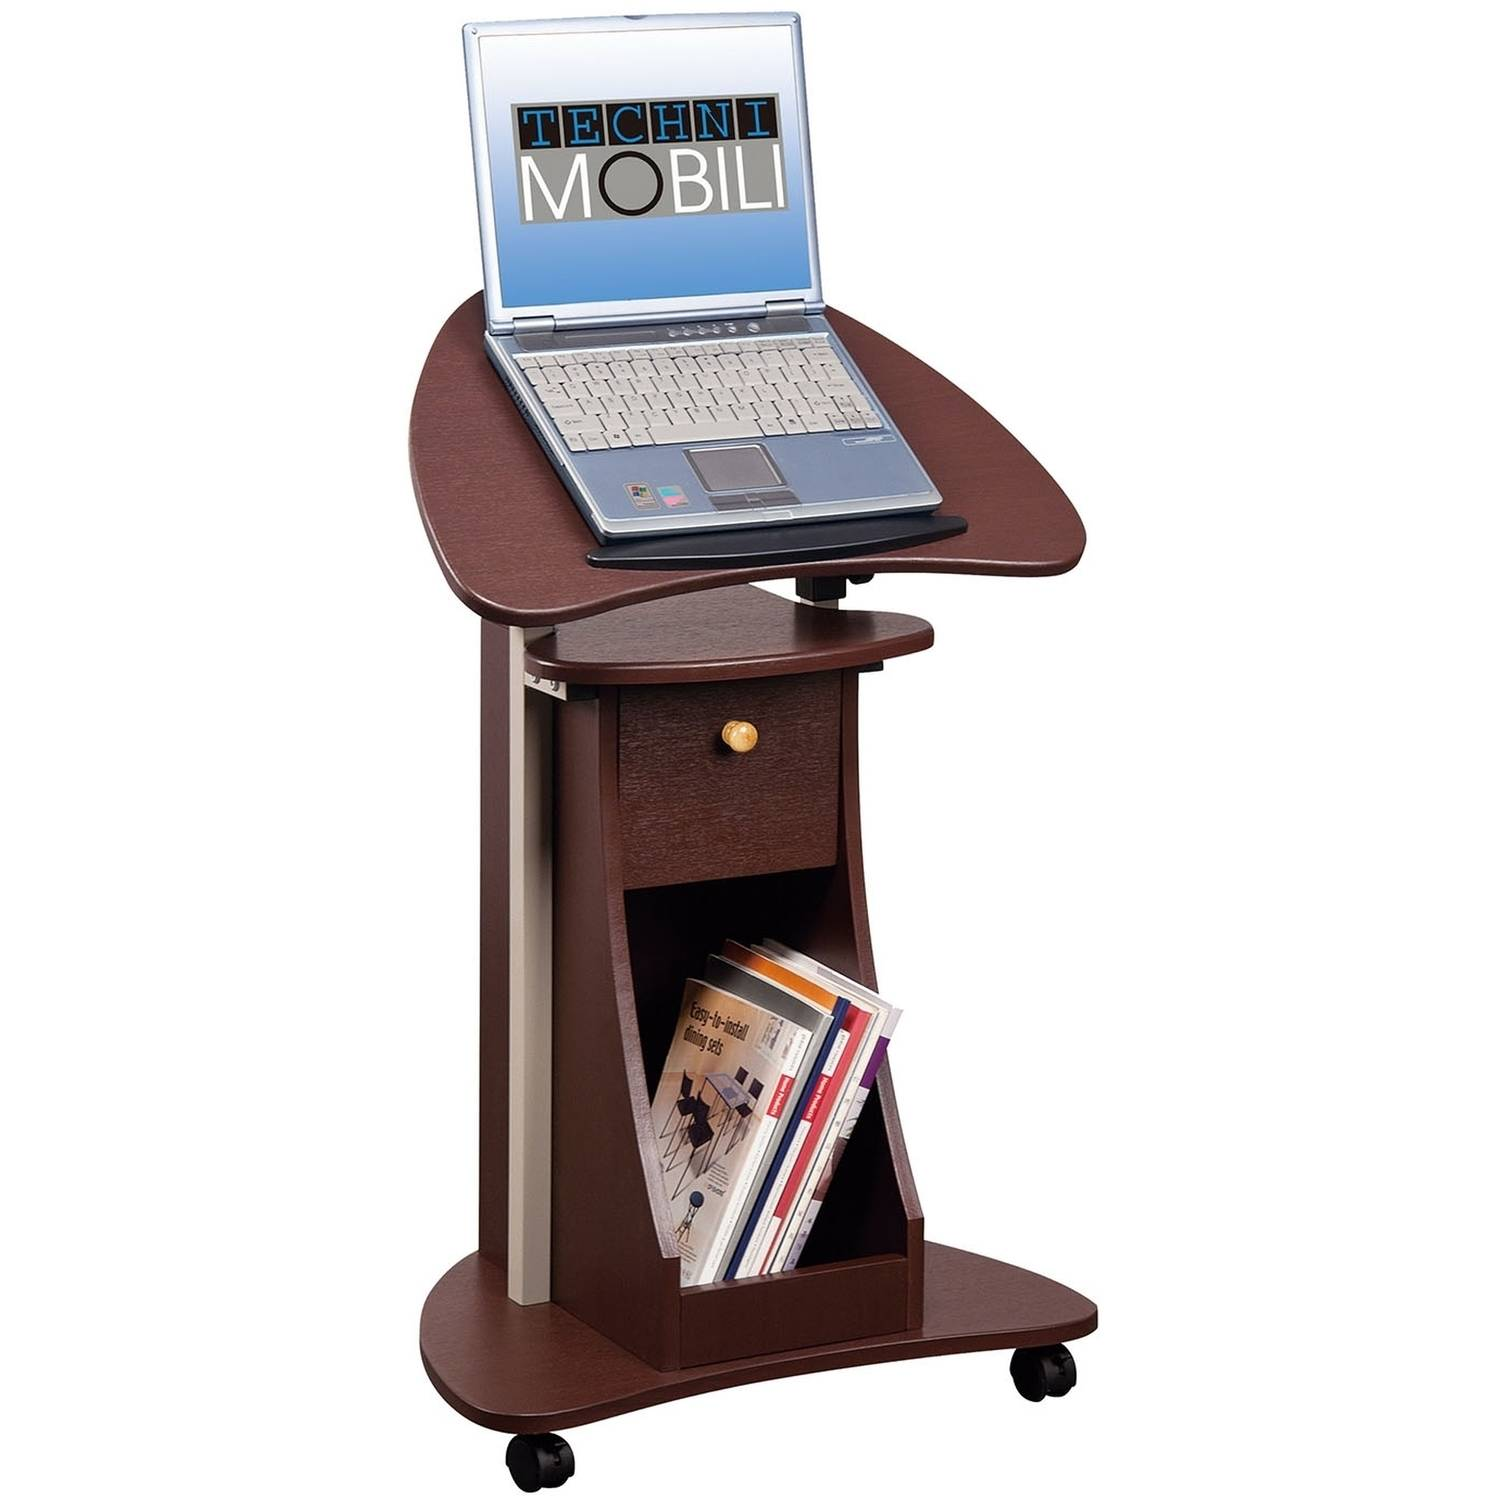 Techni Mobili Rolling, Swivel and Adjustable Laptop Cart With Storage, Chocolate